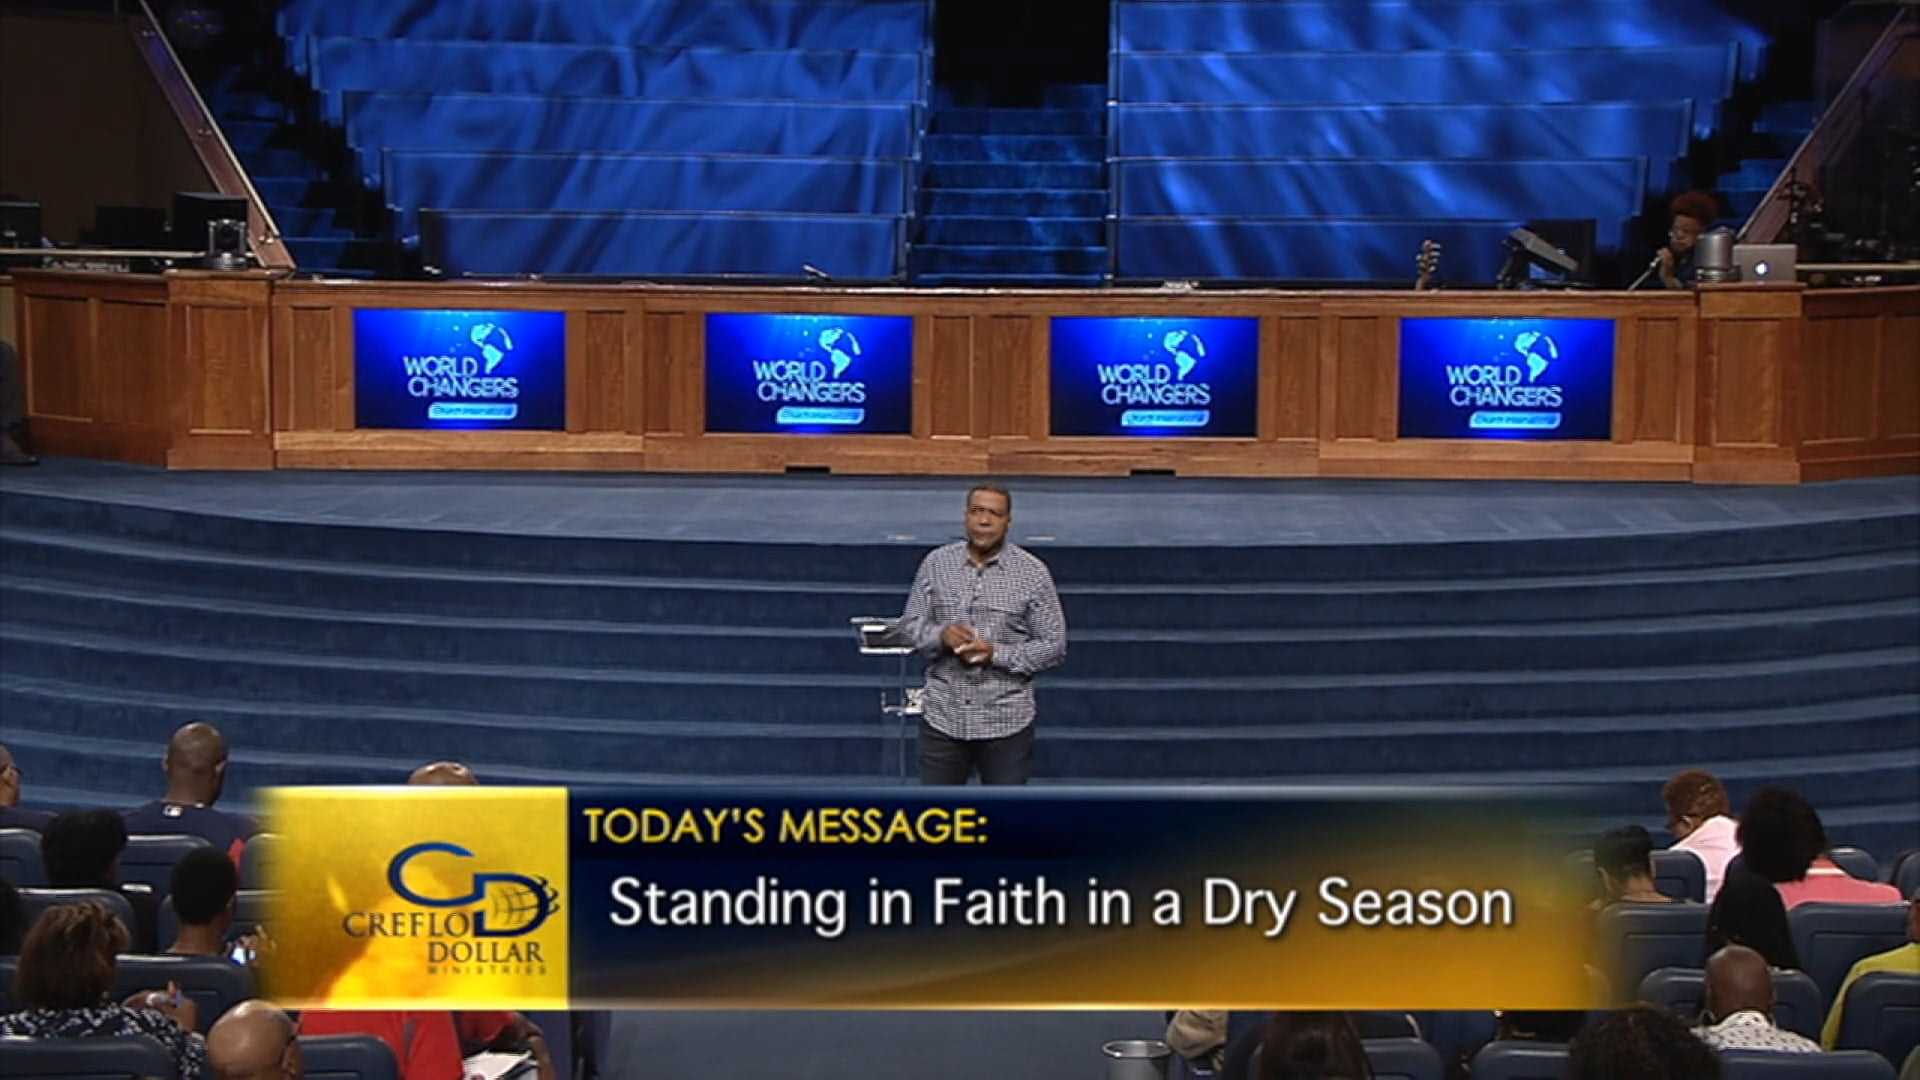 Watch Standing in Faith in a Dry Season